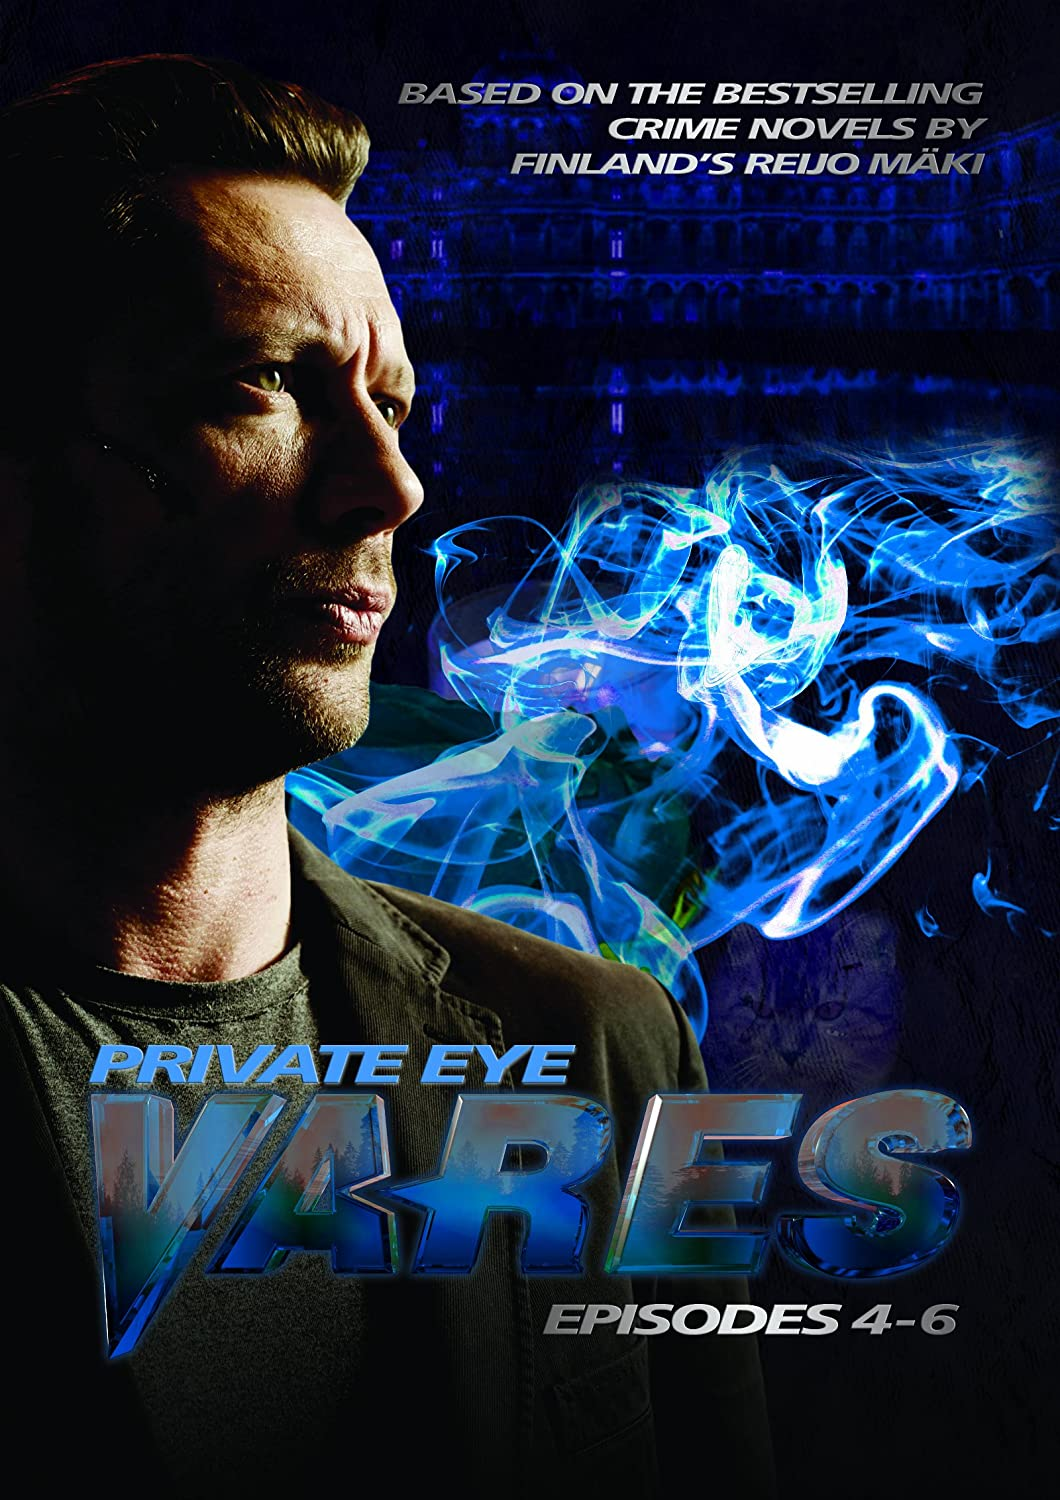 Private Eye Vares: Episodes 4-6